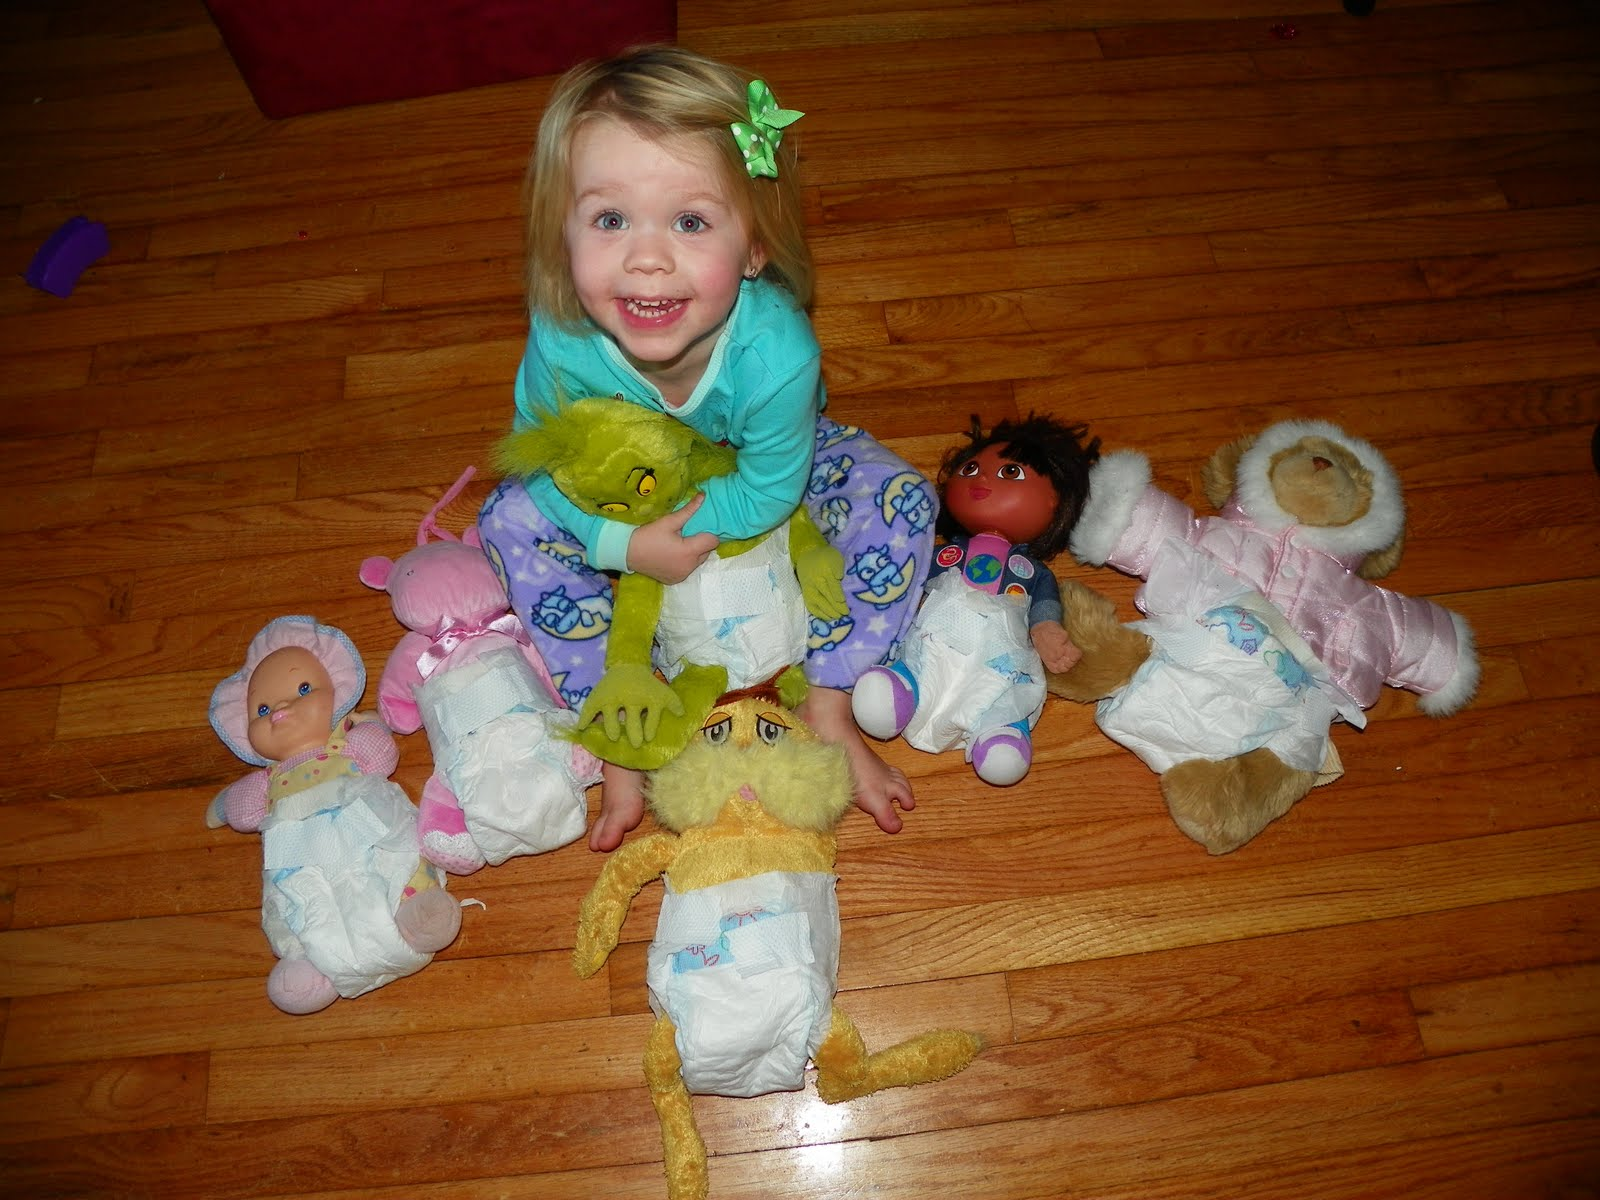 100 0413abdiaperbabies Posted by Amateur Mommy at 6:35 AM 1 comments